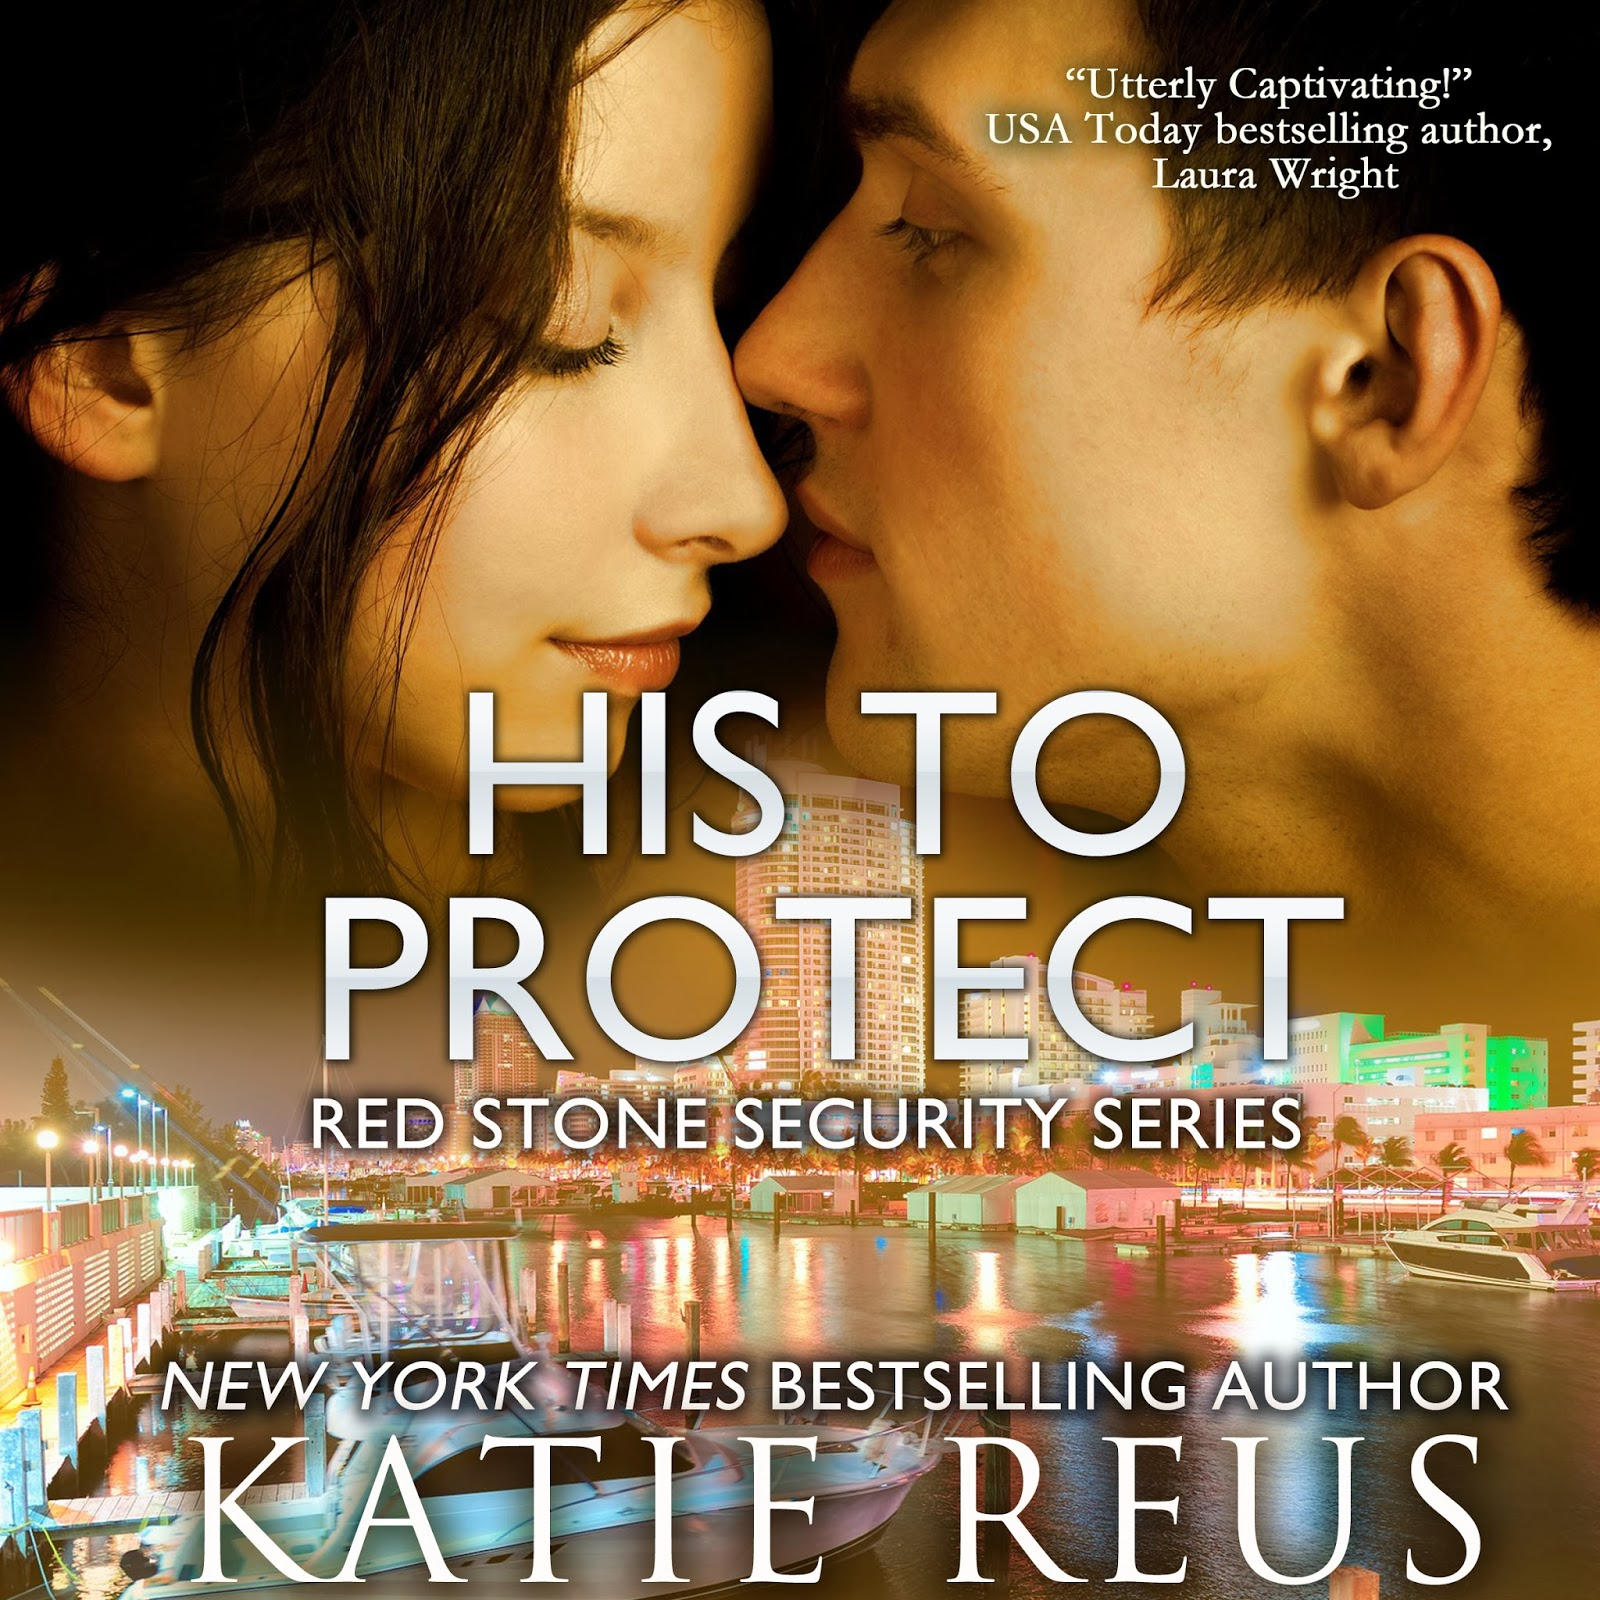 http://www.audible.com/pd/Romance/His-to-Protect-Audiobook/B00IFD8P0G/ref=a_search_c4_1_2_srTtl?qid=1393170599&sr=1-2